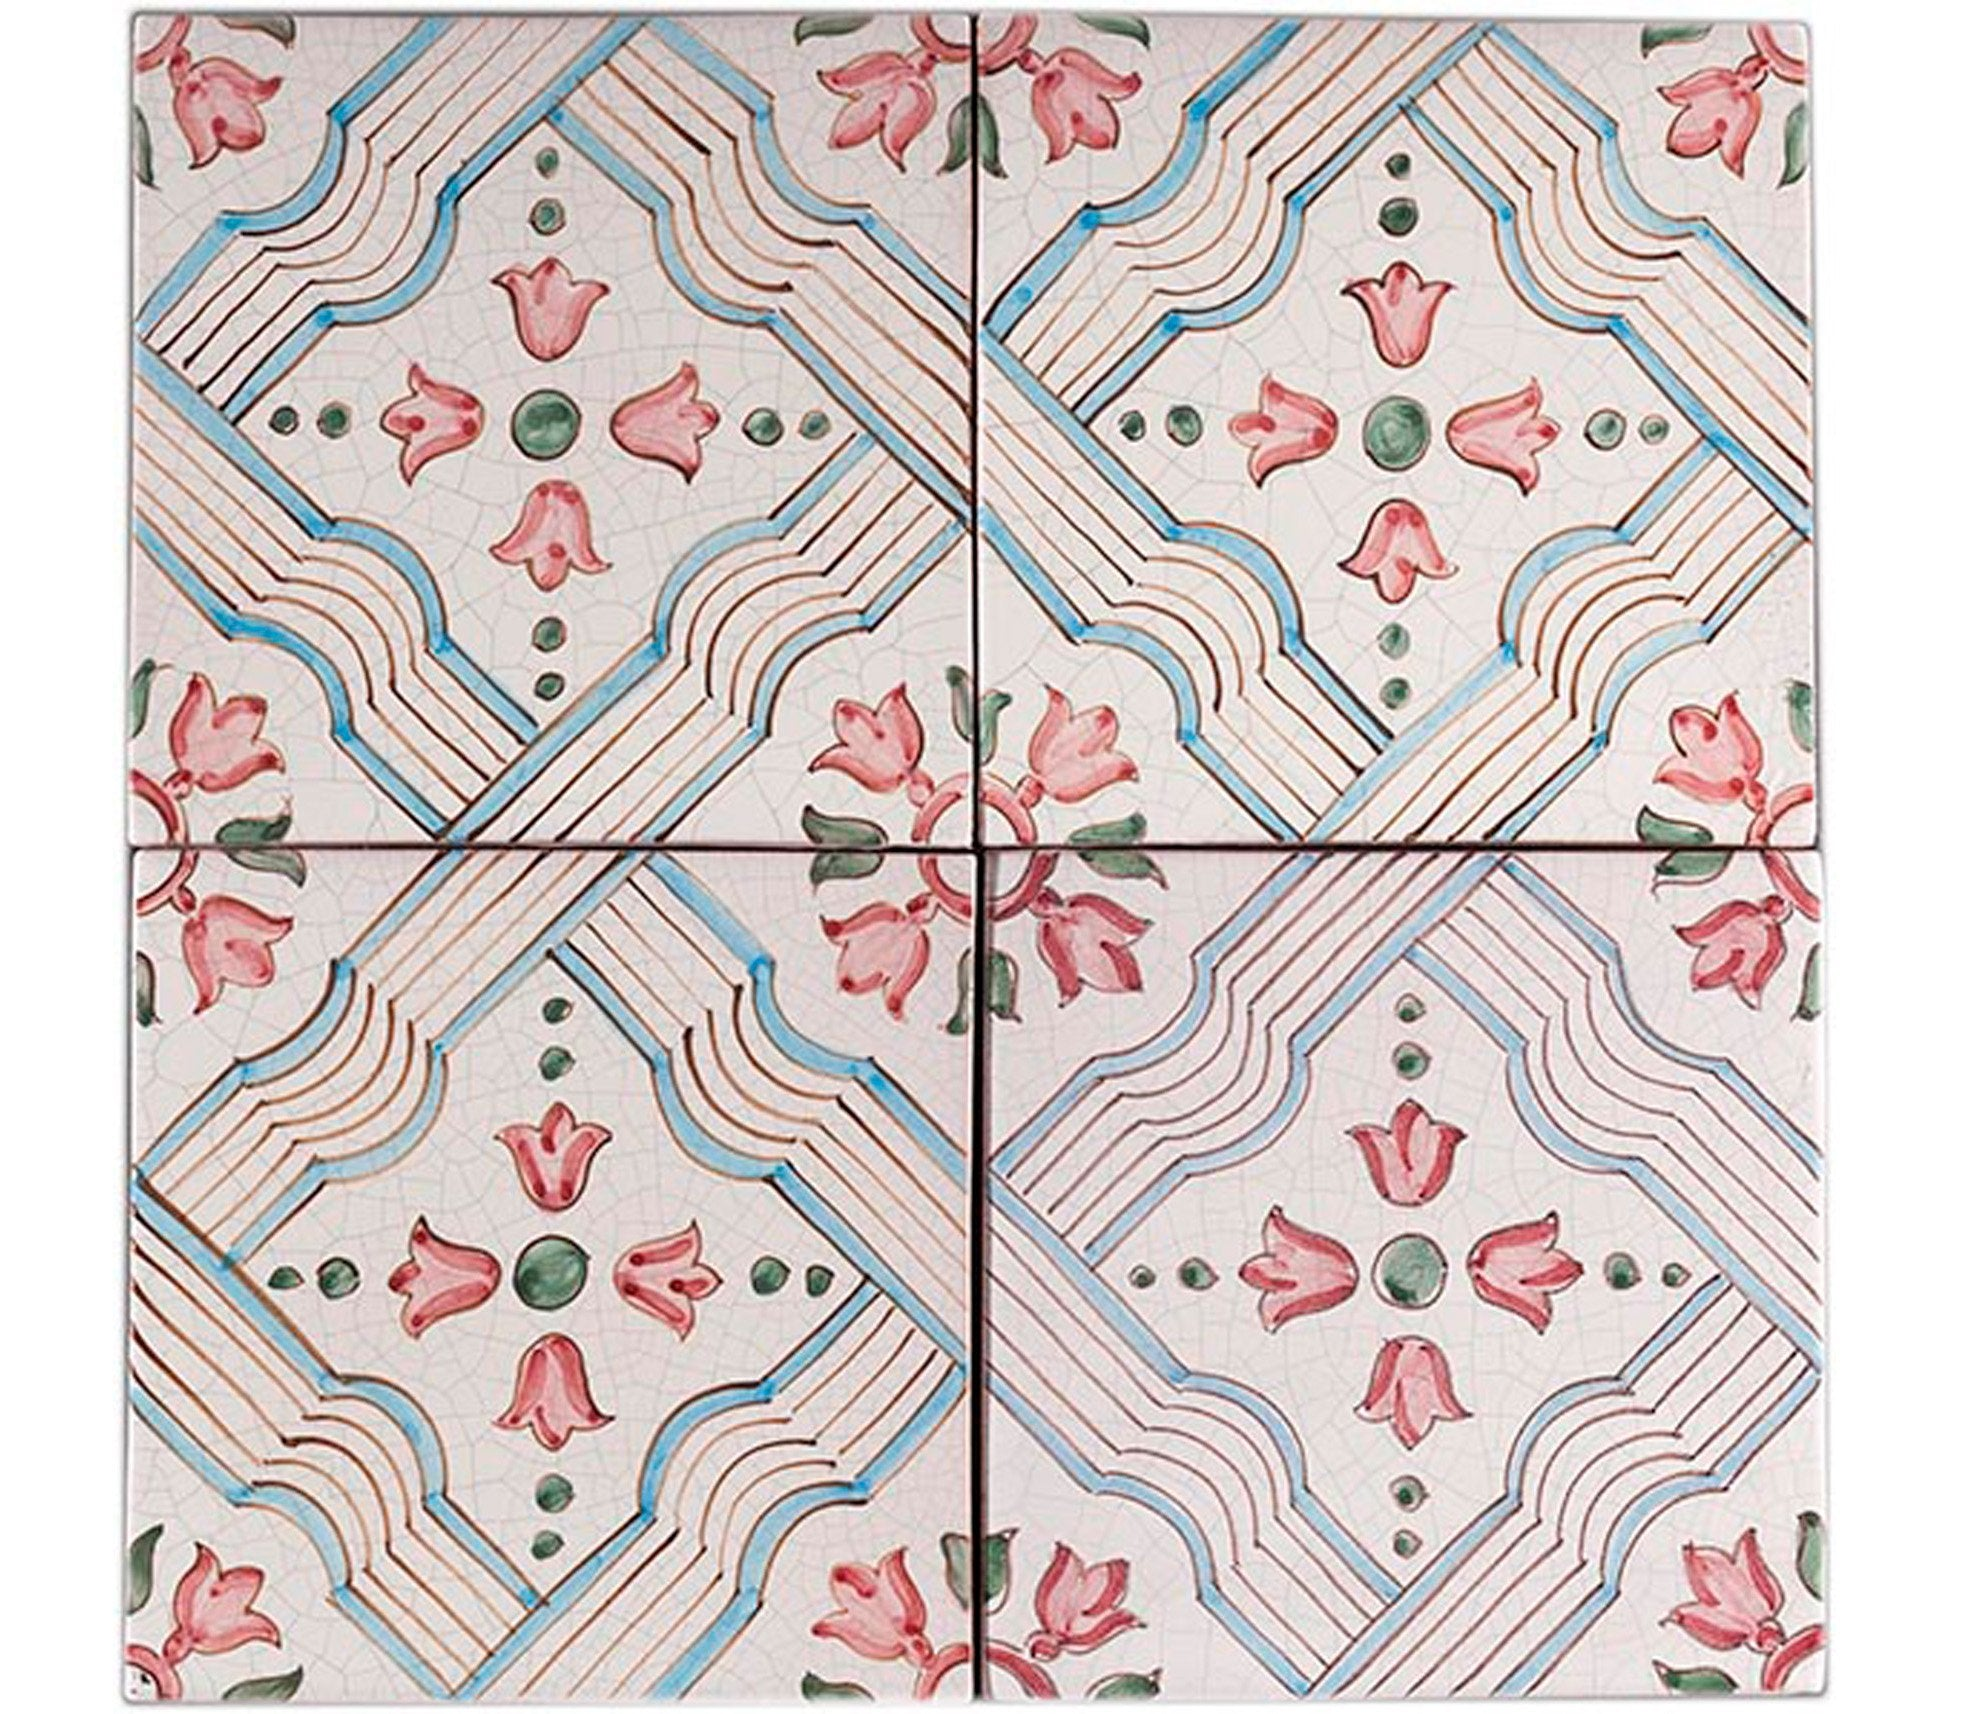 Series S Handpainted Tiles Product Image 48